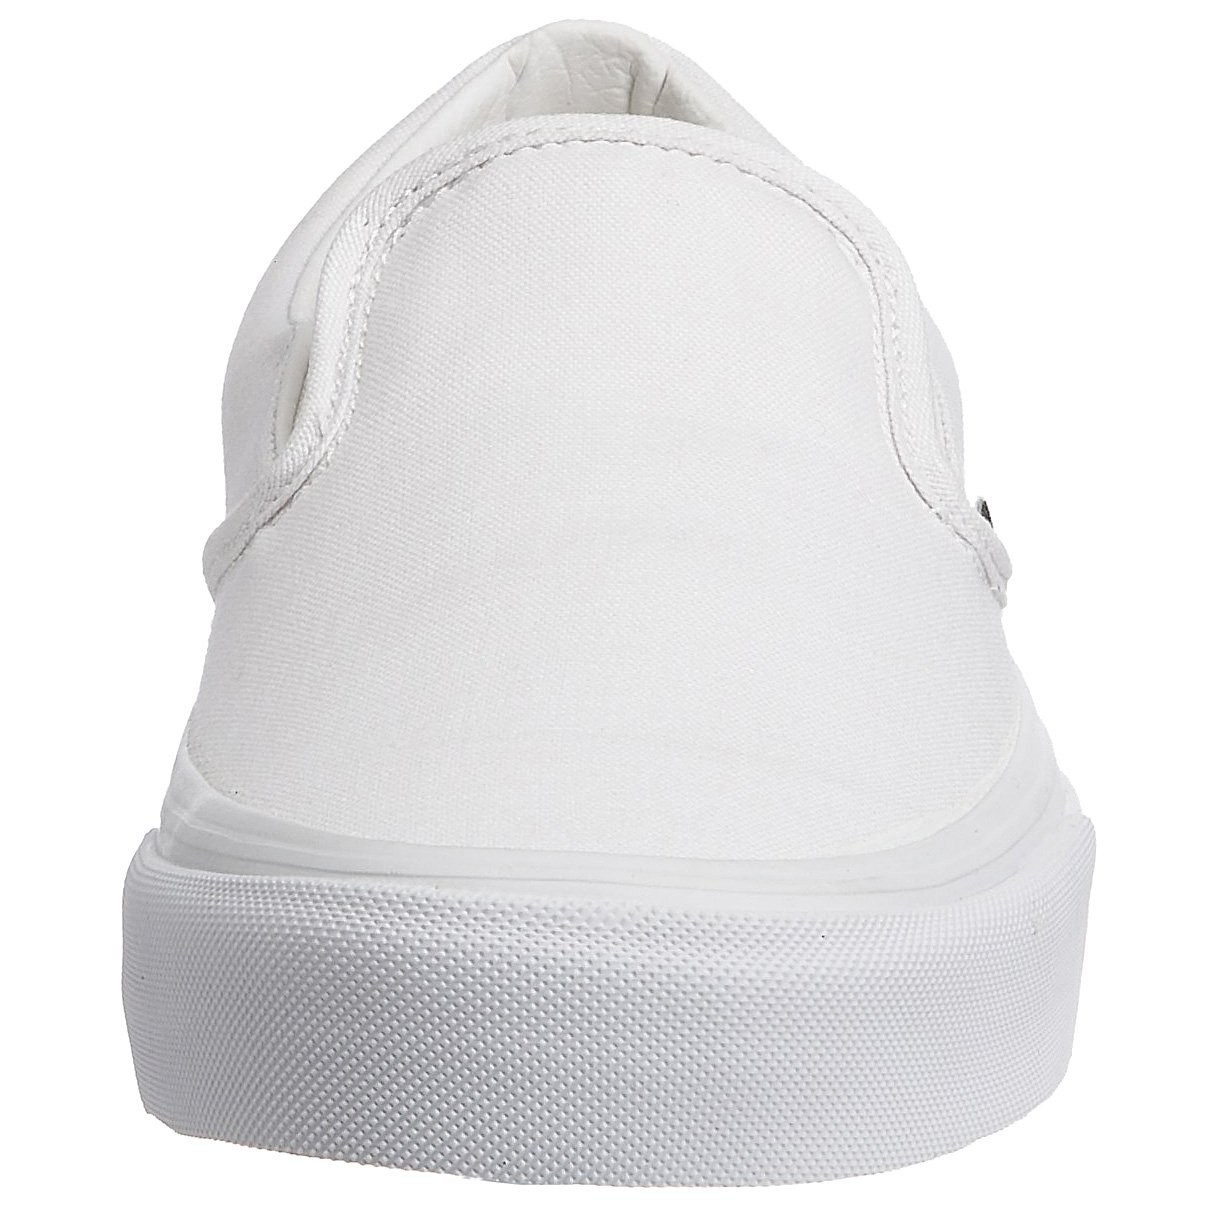 Vans Unisex Classic Slip-On(tm) Core Classics True White (Canvas) Sneaker Men's 6.5, Women's 8 Medium by Vans (Image #4)